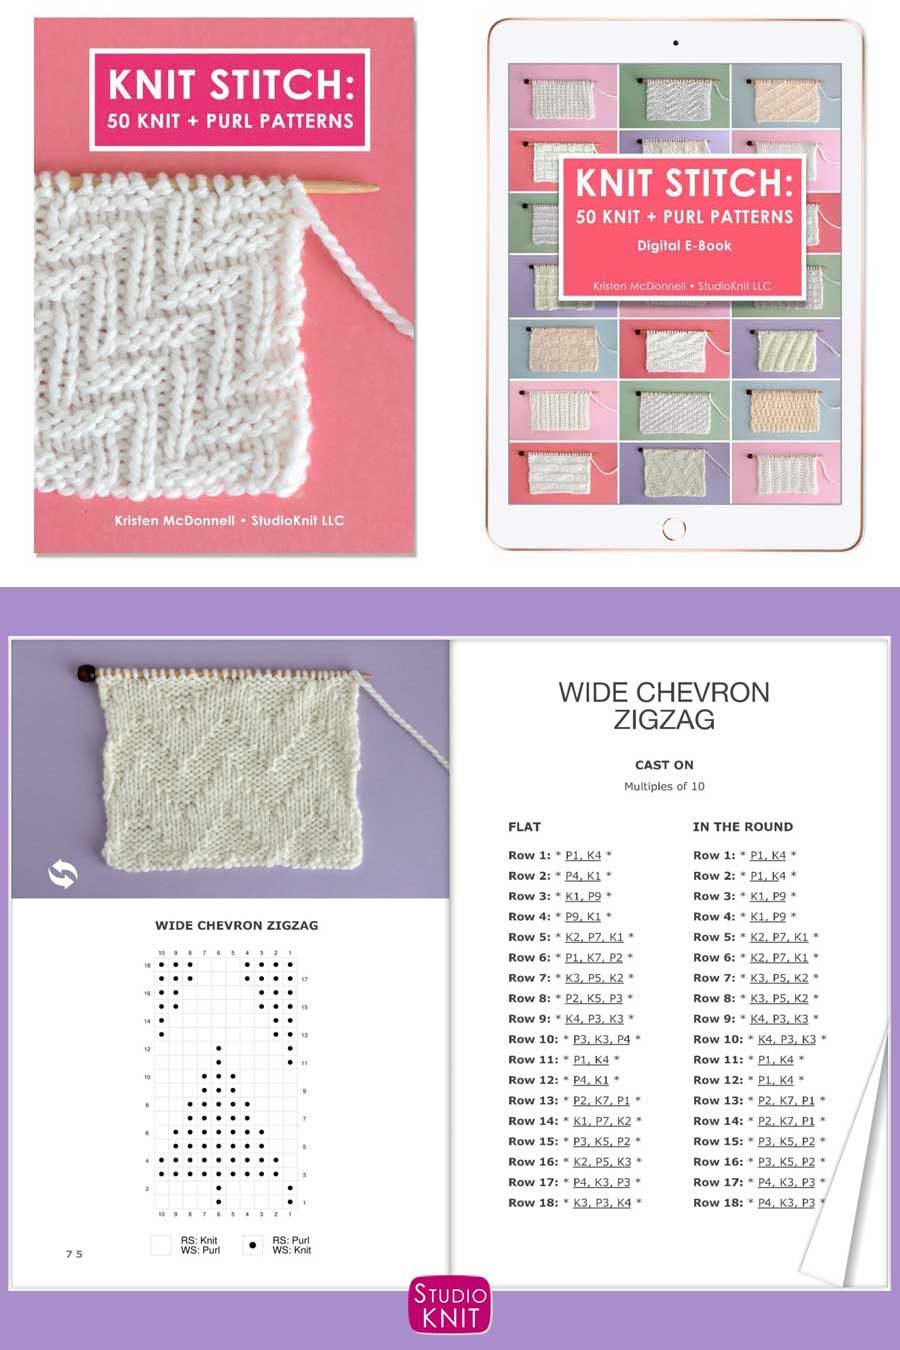 Knit Stitch Pattern Book with Wide Chevron Zigzag Stitch